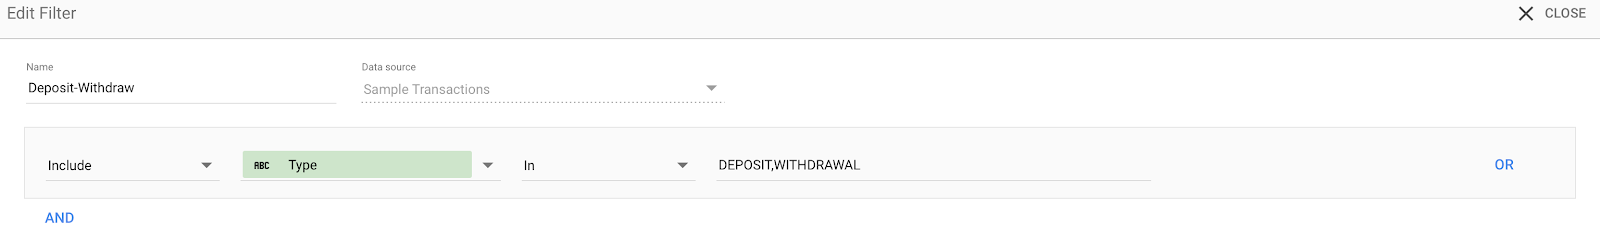 Filter to keep only transactions of types: DEPOSIT, WITHDRAWAL